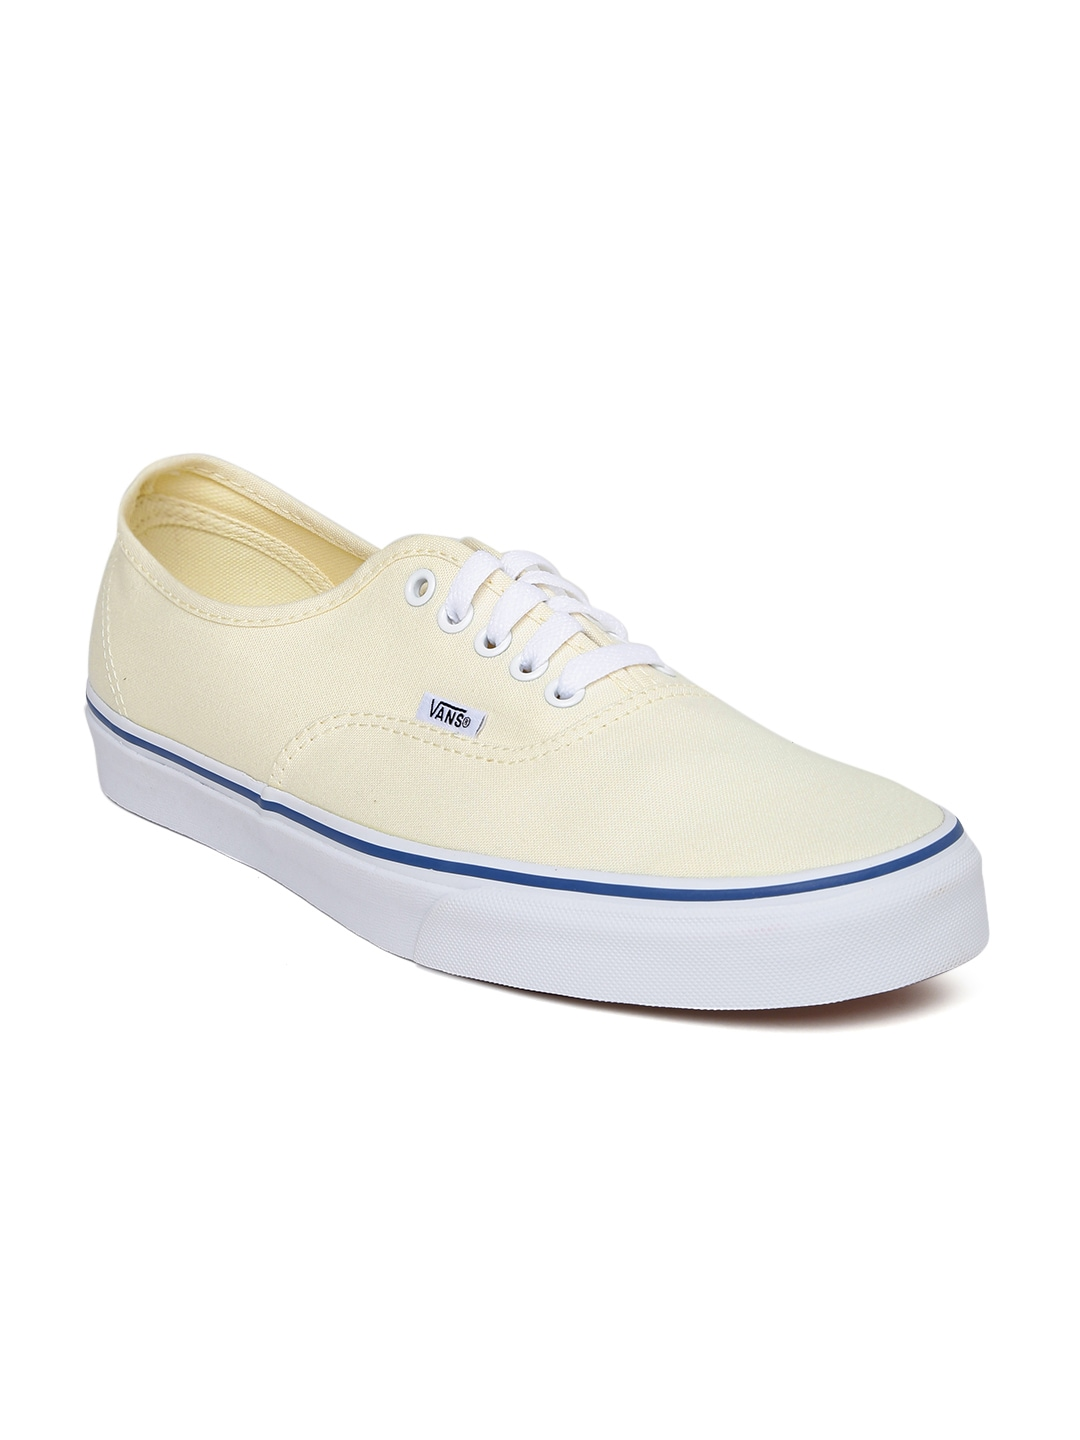 1538589ca9 Vans - Buy Vans Footwear